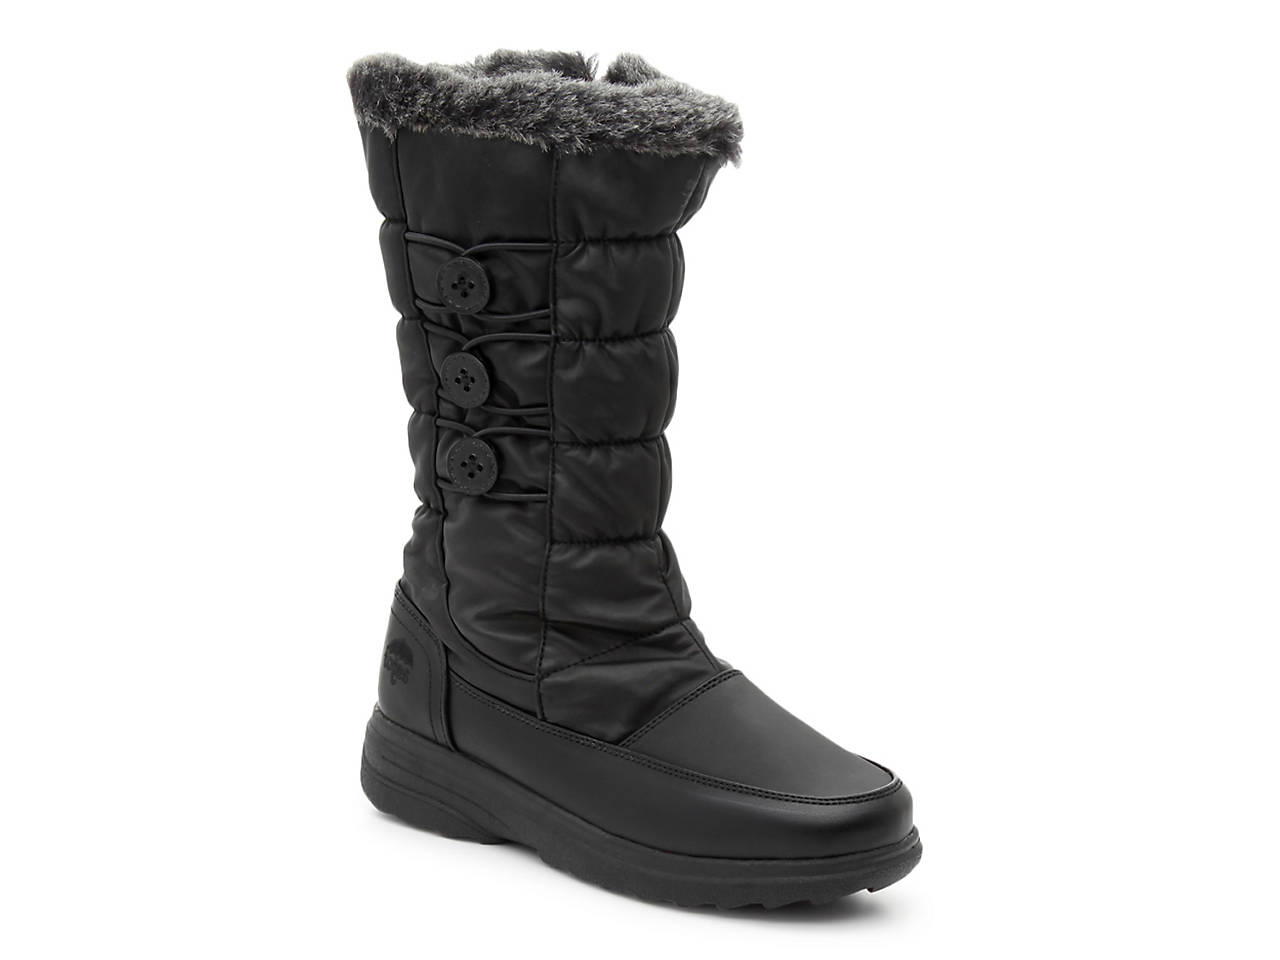 ee85fae83d1d Totes Sunset Snow Boot Women s Shoes